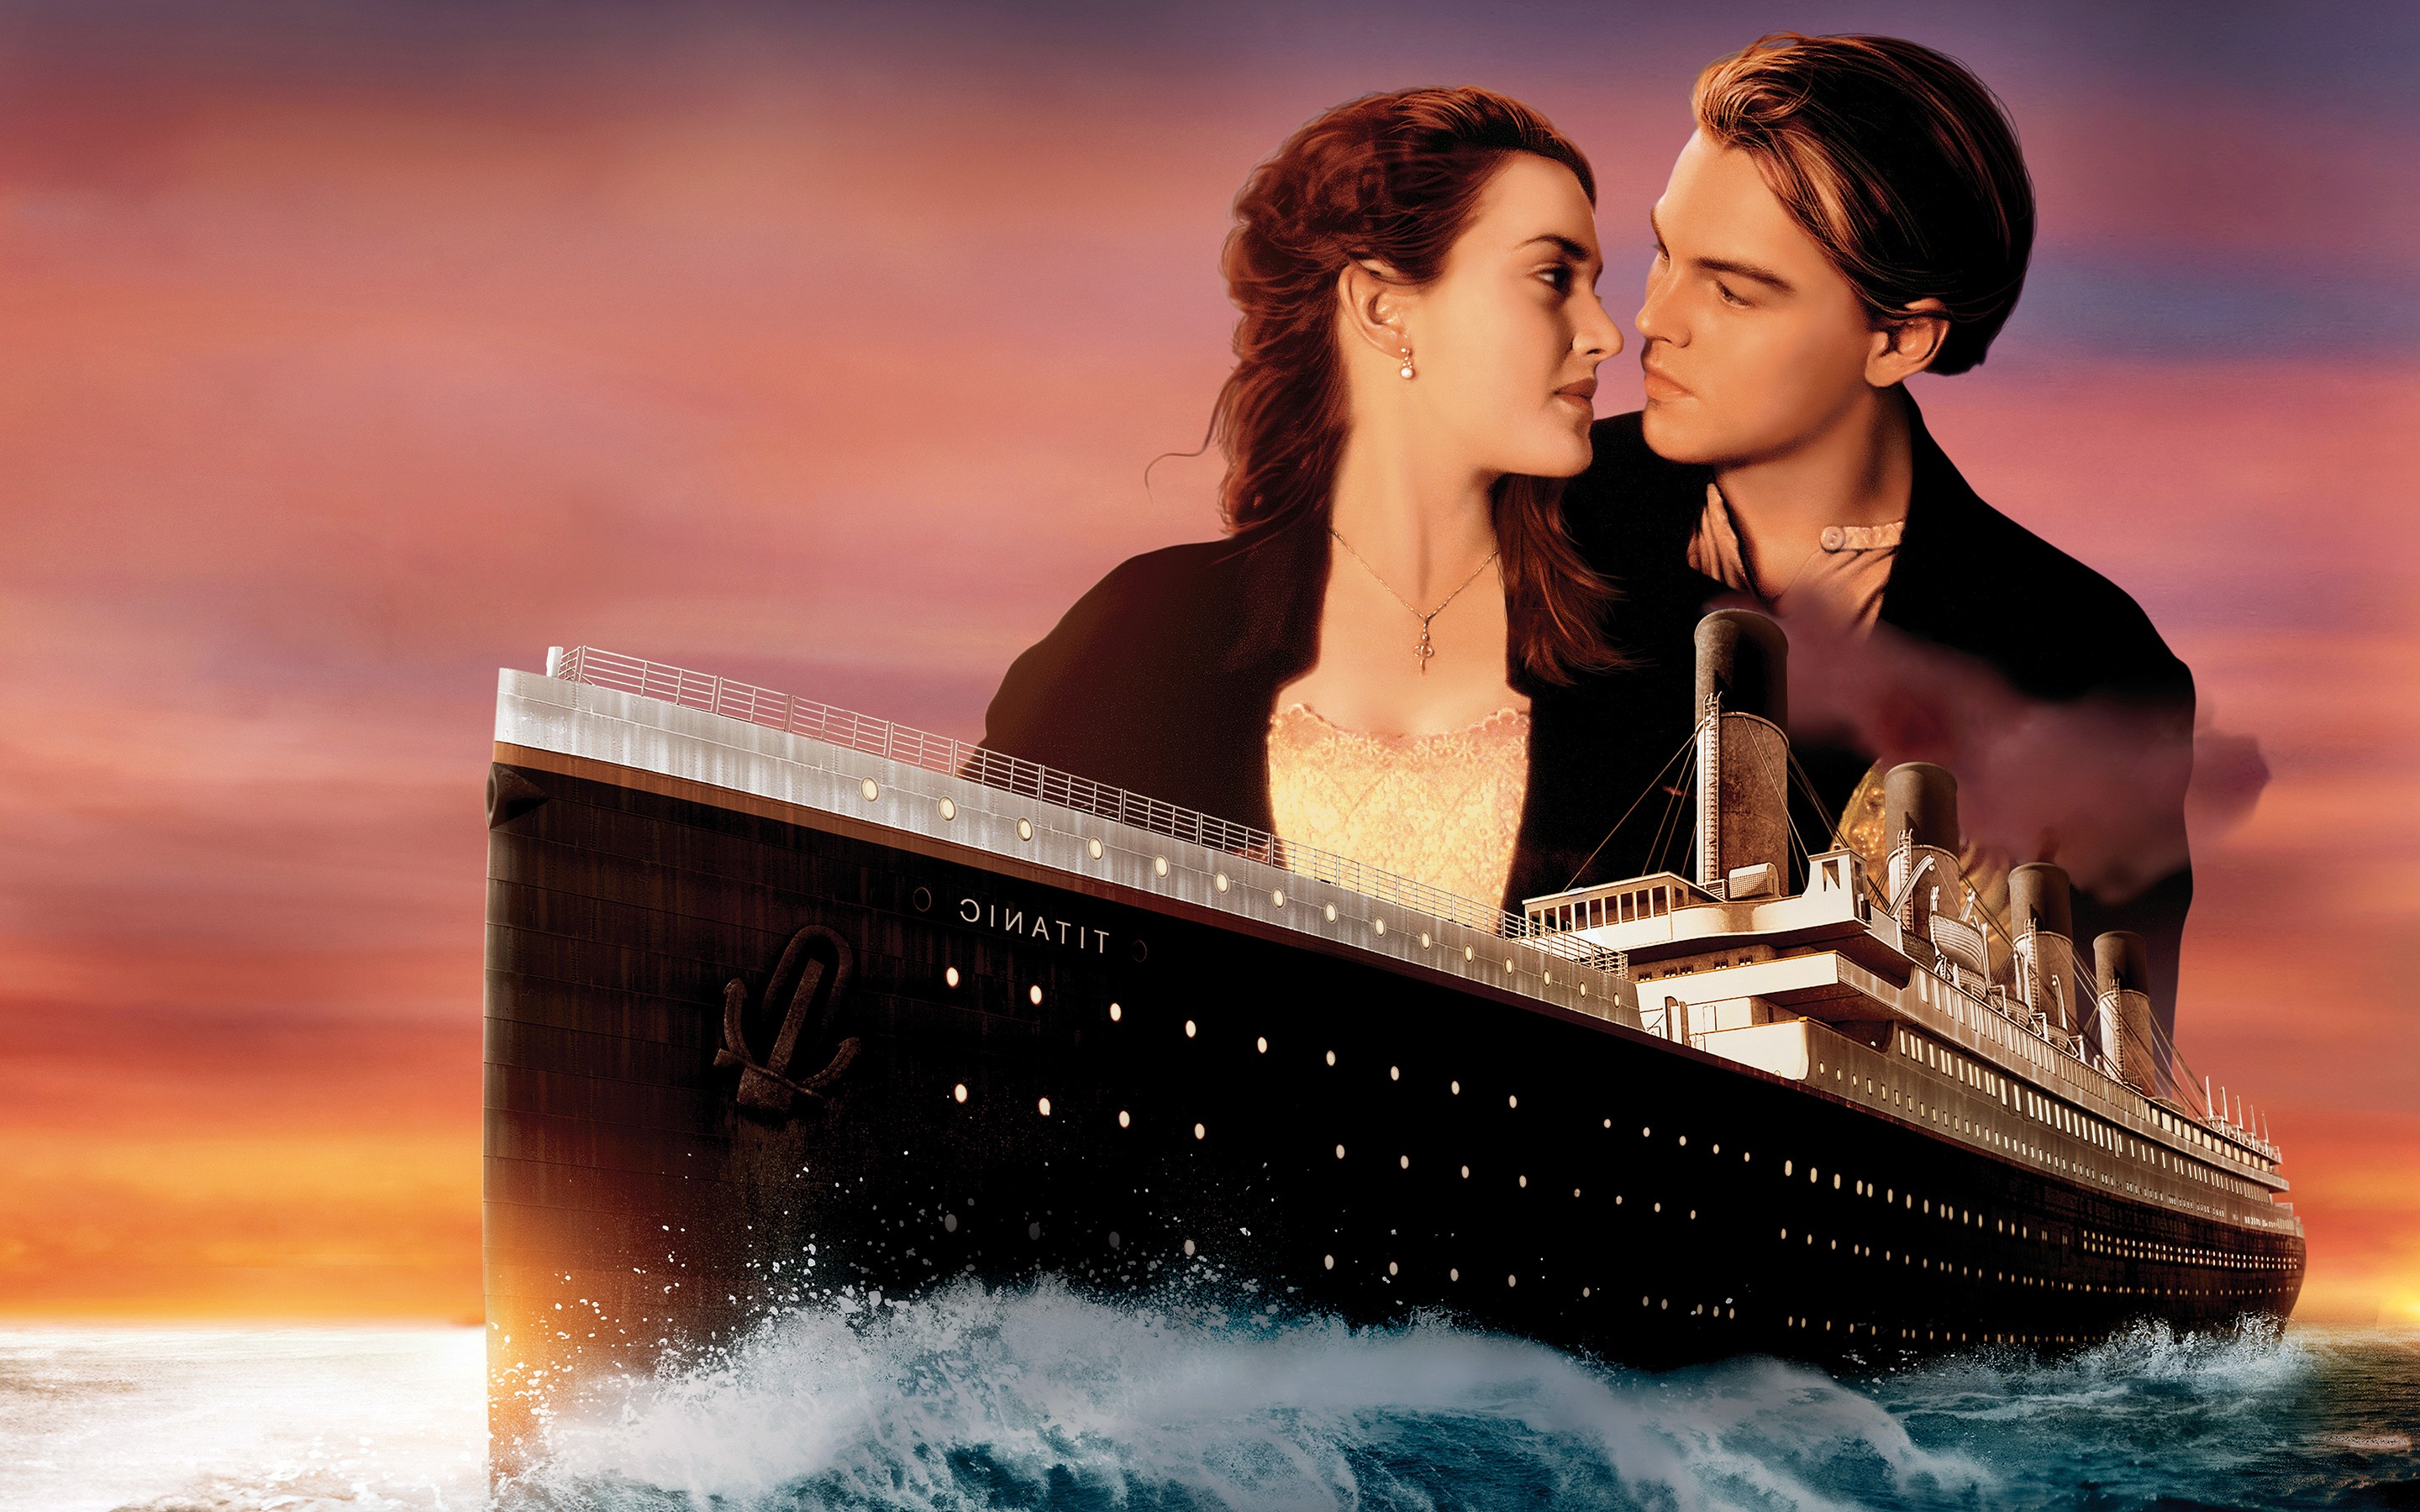 Splendid titanic sex